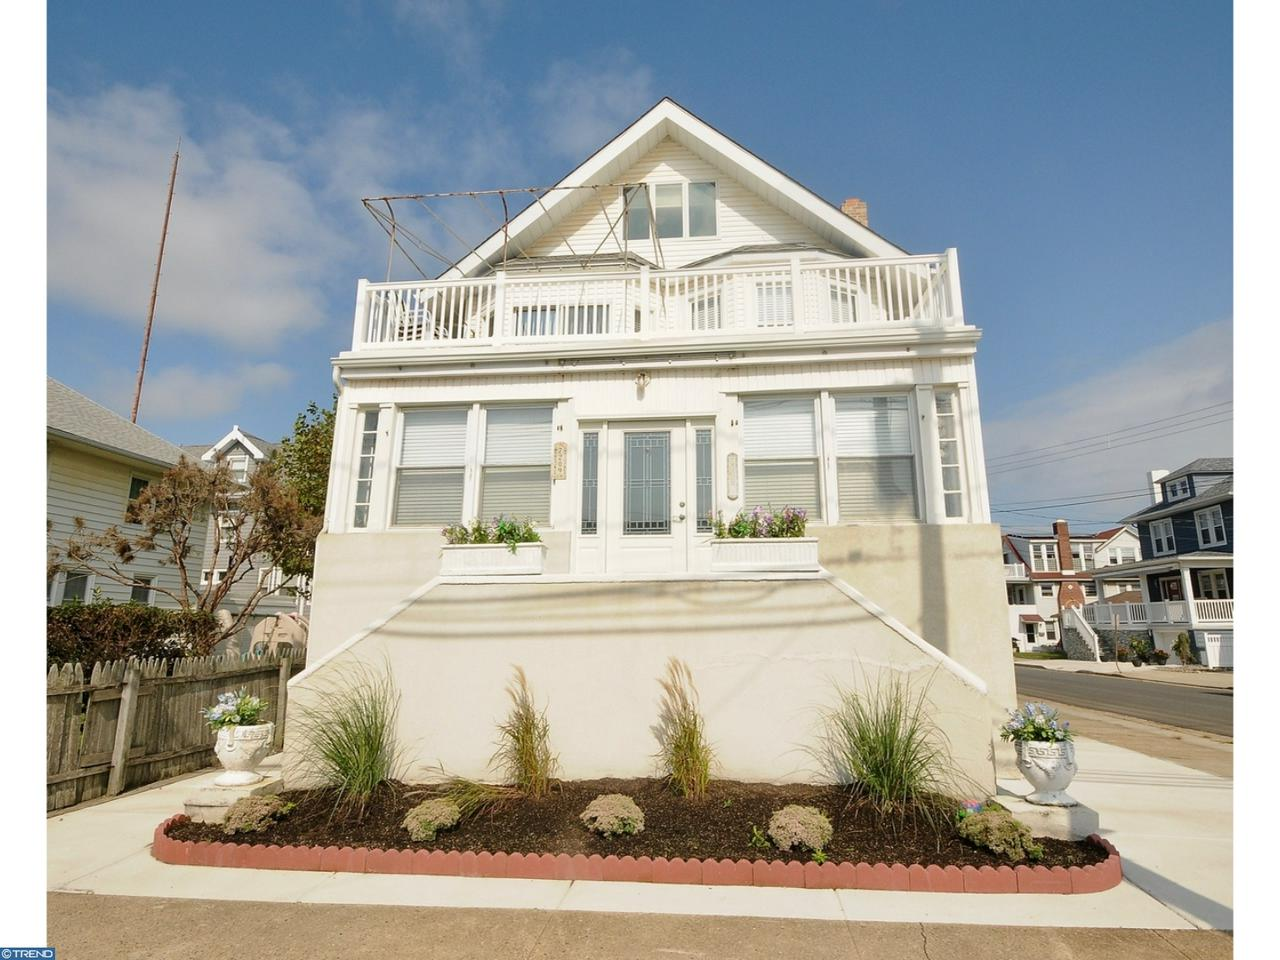 7209 ATLANTIC AVE, VENTNOR CITY in ATLANTIC County, NJ 08406 Home for Sale